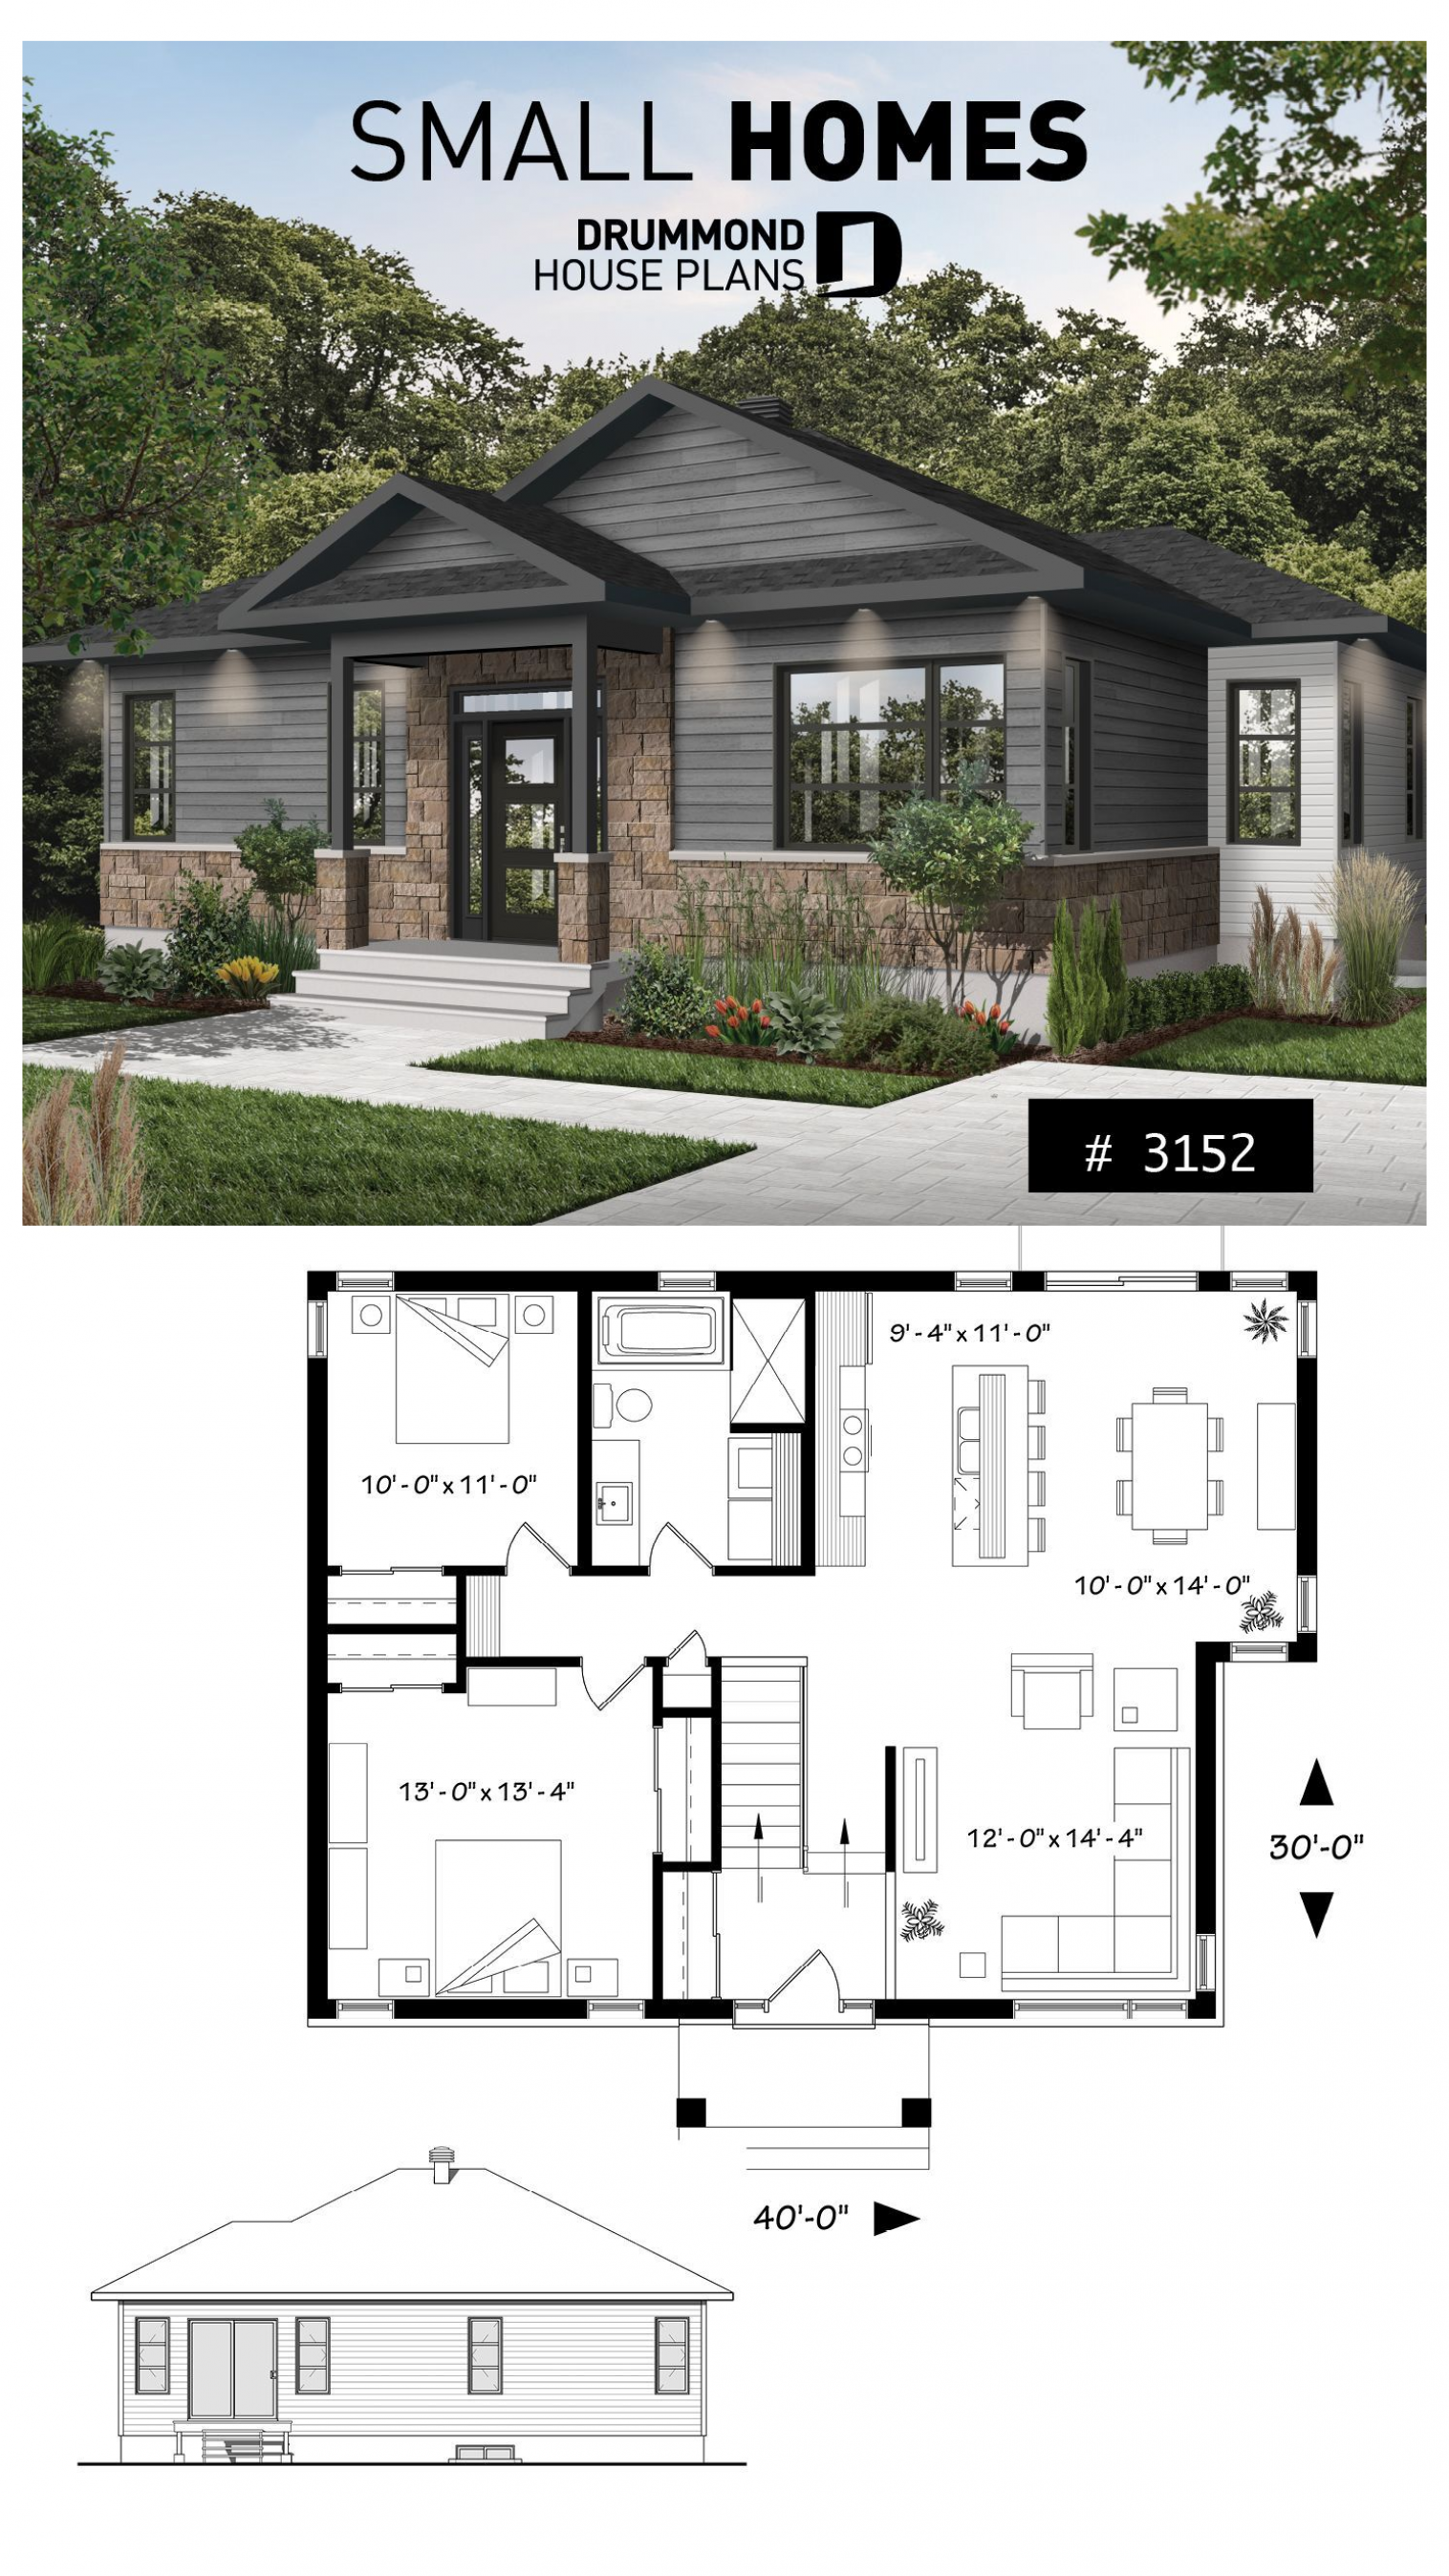 Small Modern Rustic Home 2 Bedroom Rustic Modern Home Plan Split Entry Large Kitchen Island Lar Rustic House Plans Modern Rustic Homes Modern House Plans